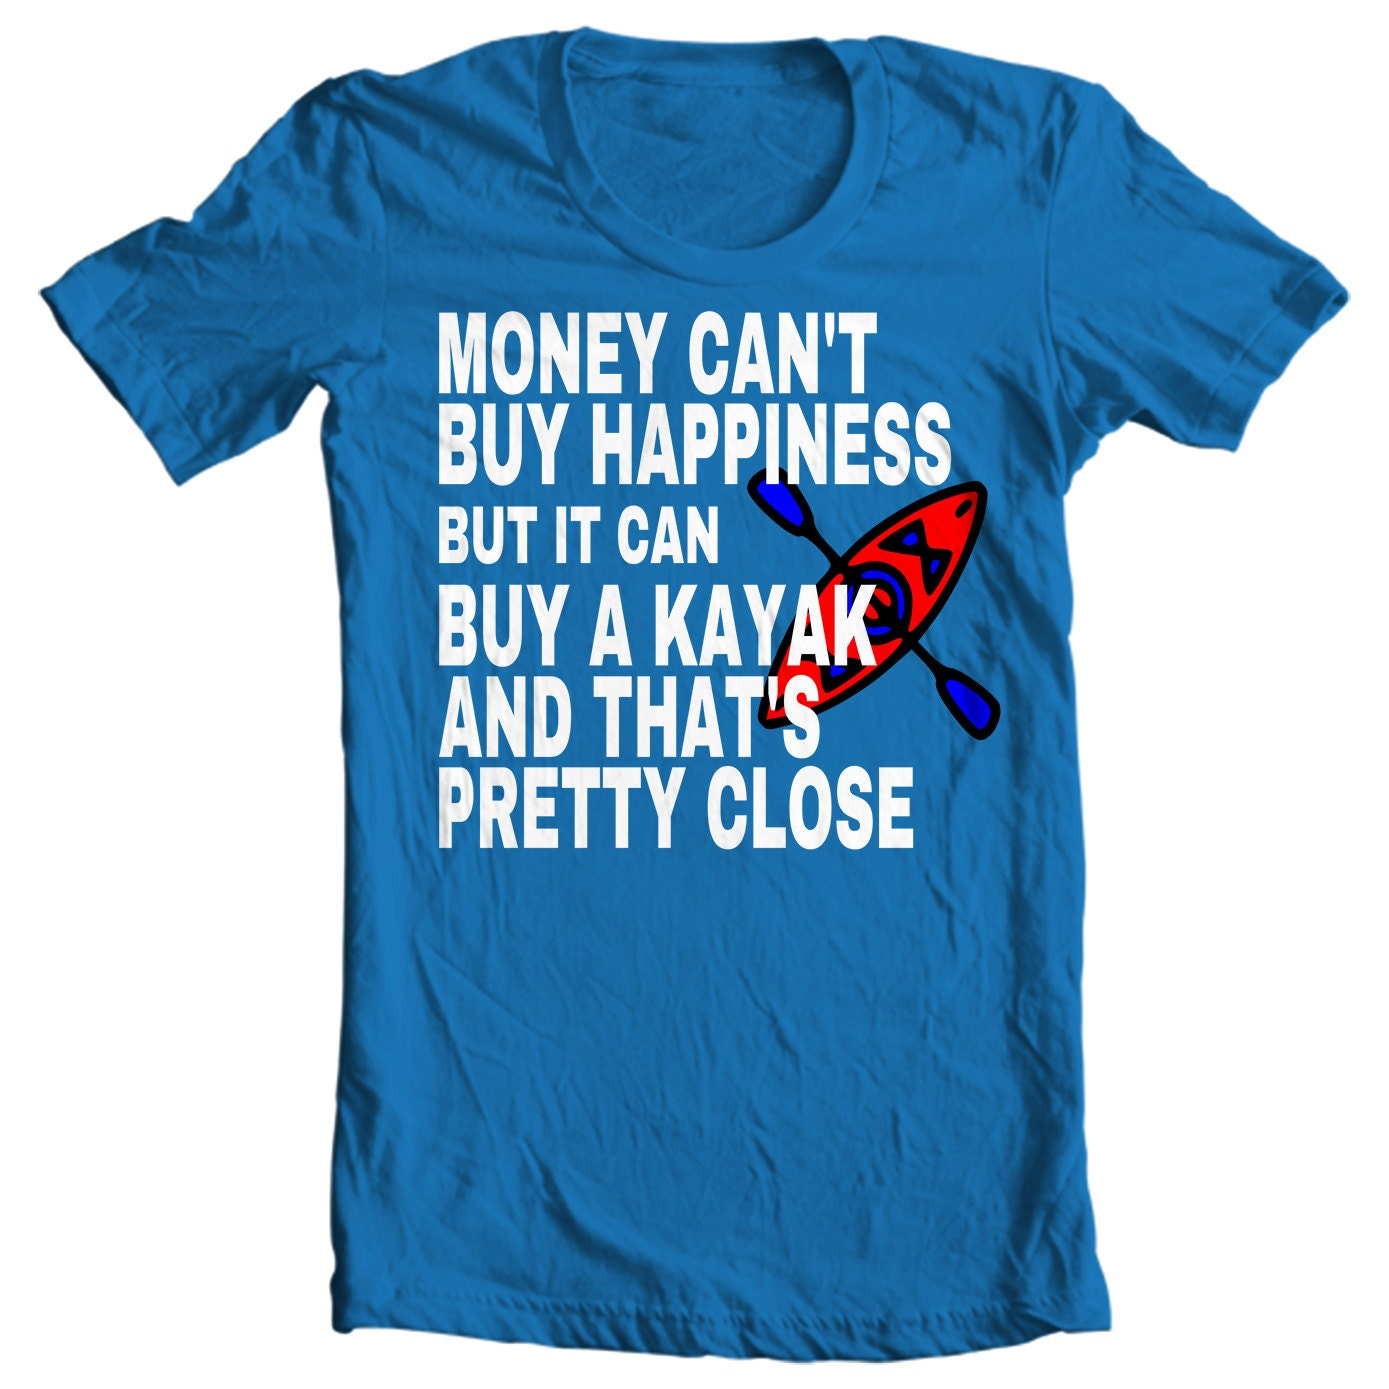 Kayak T-shirt - Money Can't Buy Happiness But It Can Buy A Kayak And That's Pretty Close - Paddle Life Kayaking T-shirt